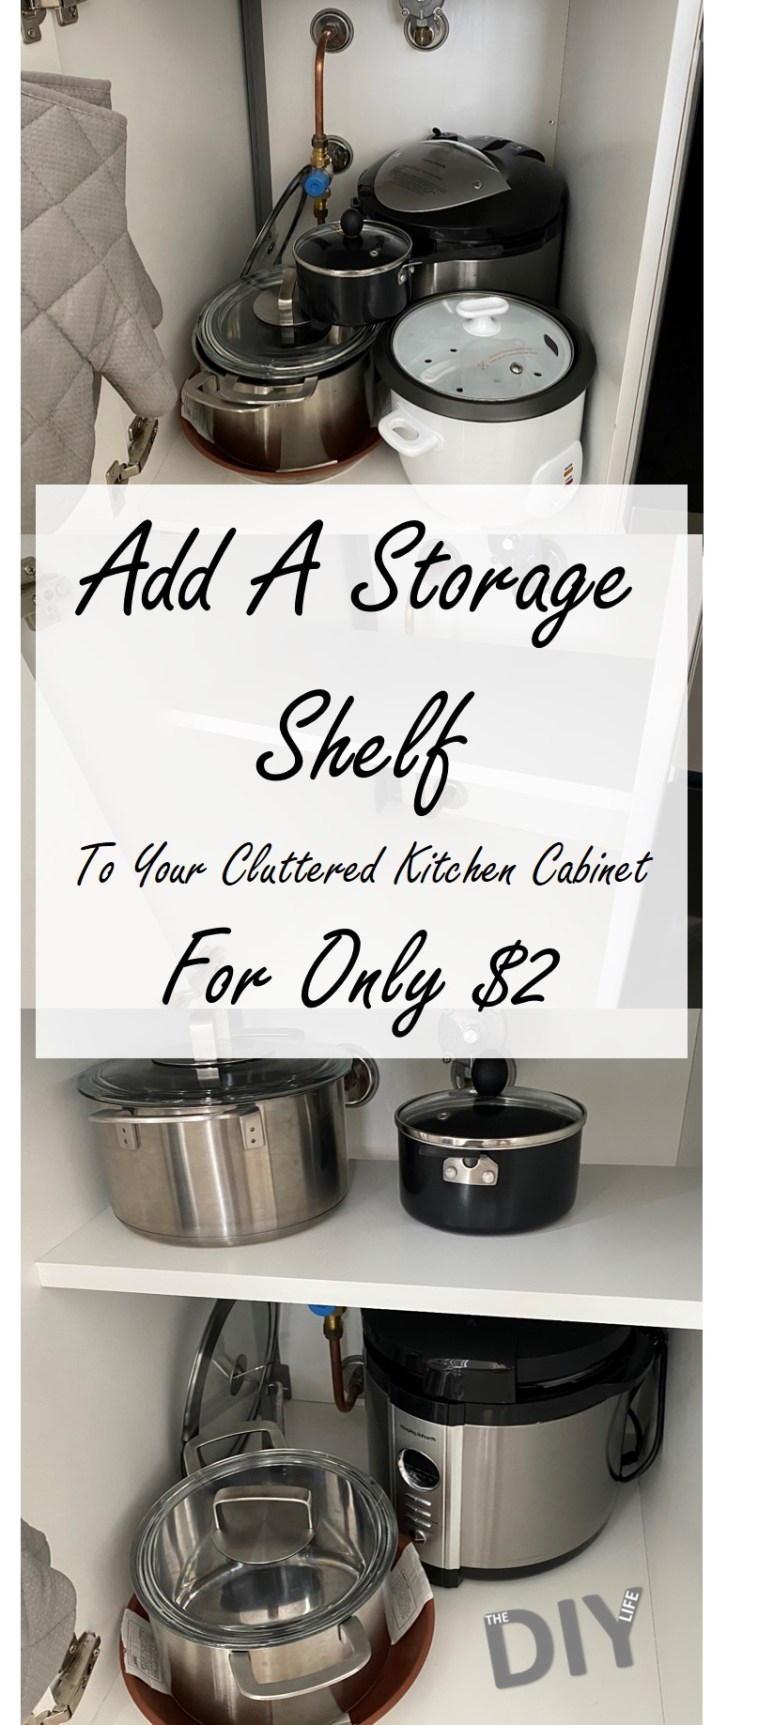 How To Add An Extra Storage Shelf To Your Cluttered Kitchen Cabinet For $2